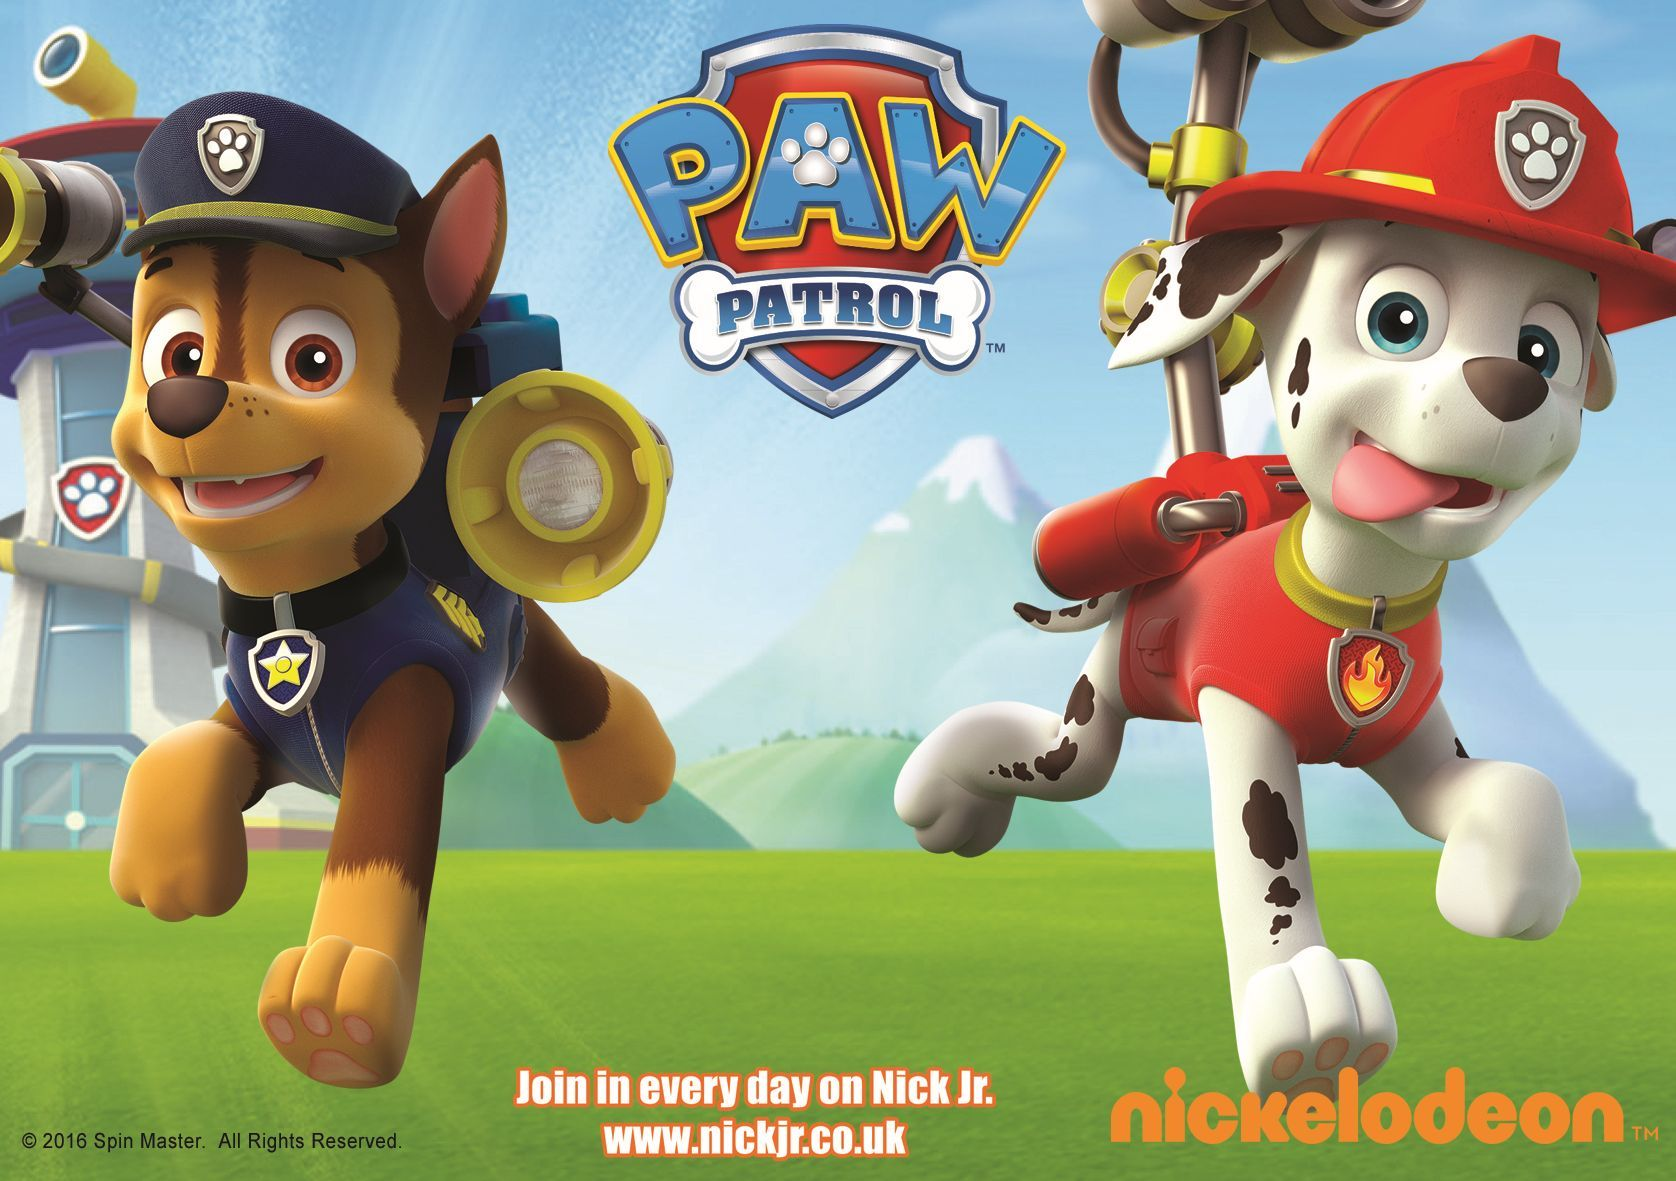 PAW PATROL: Heading to Bridgwater